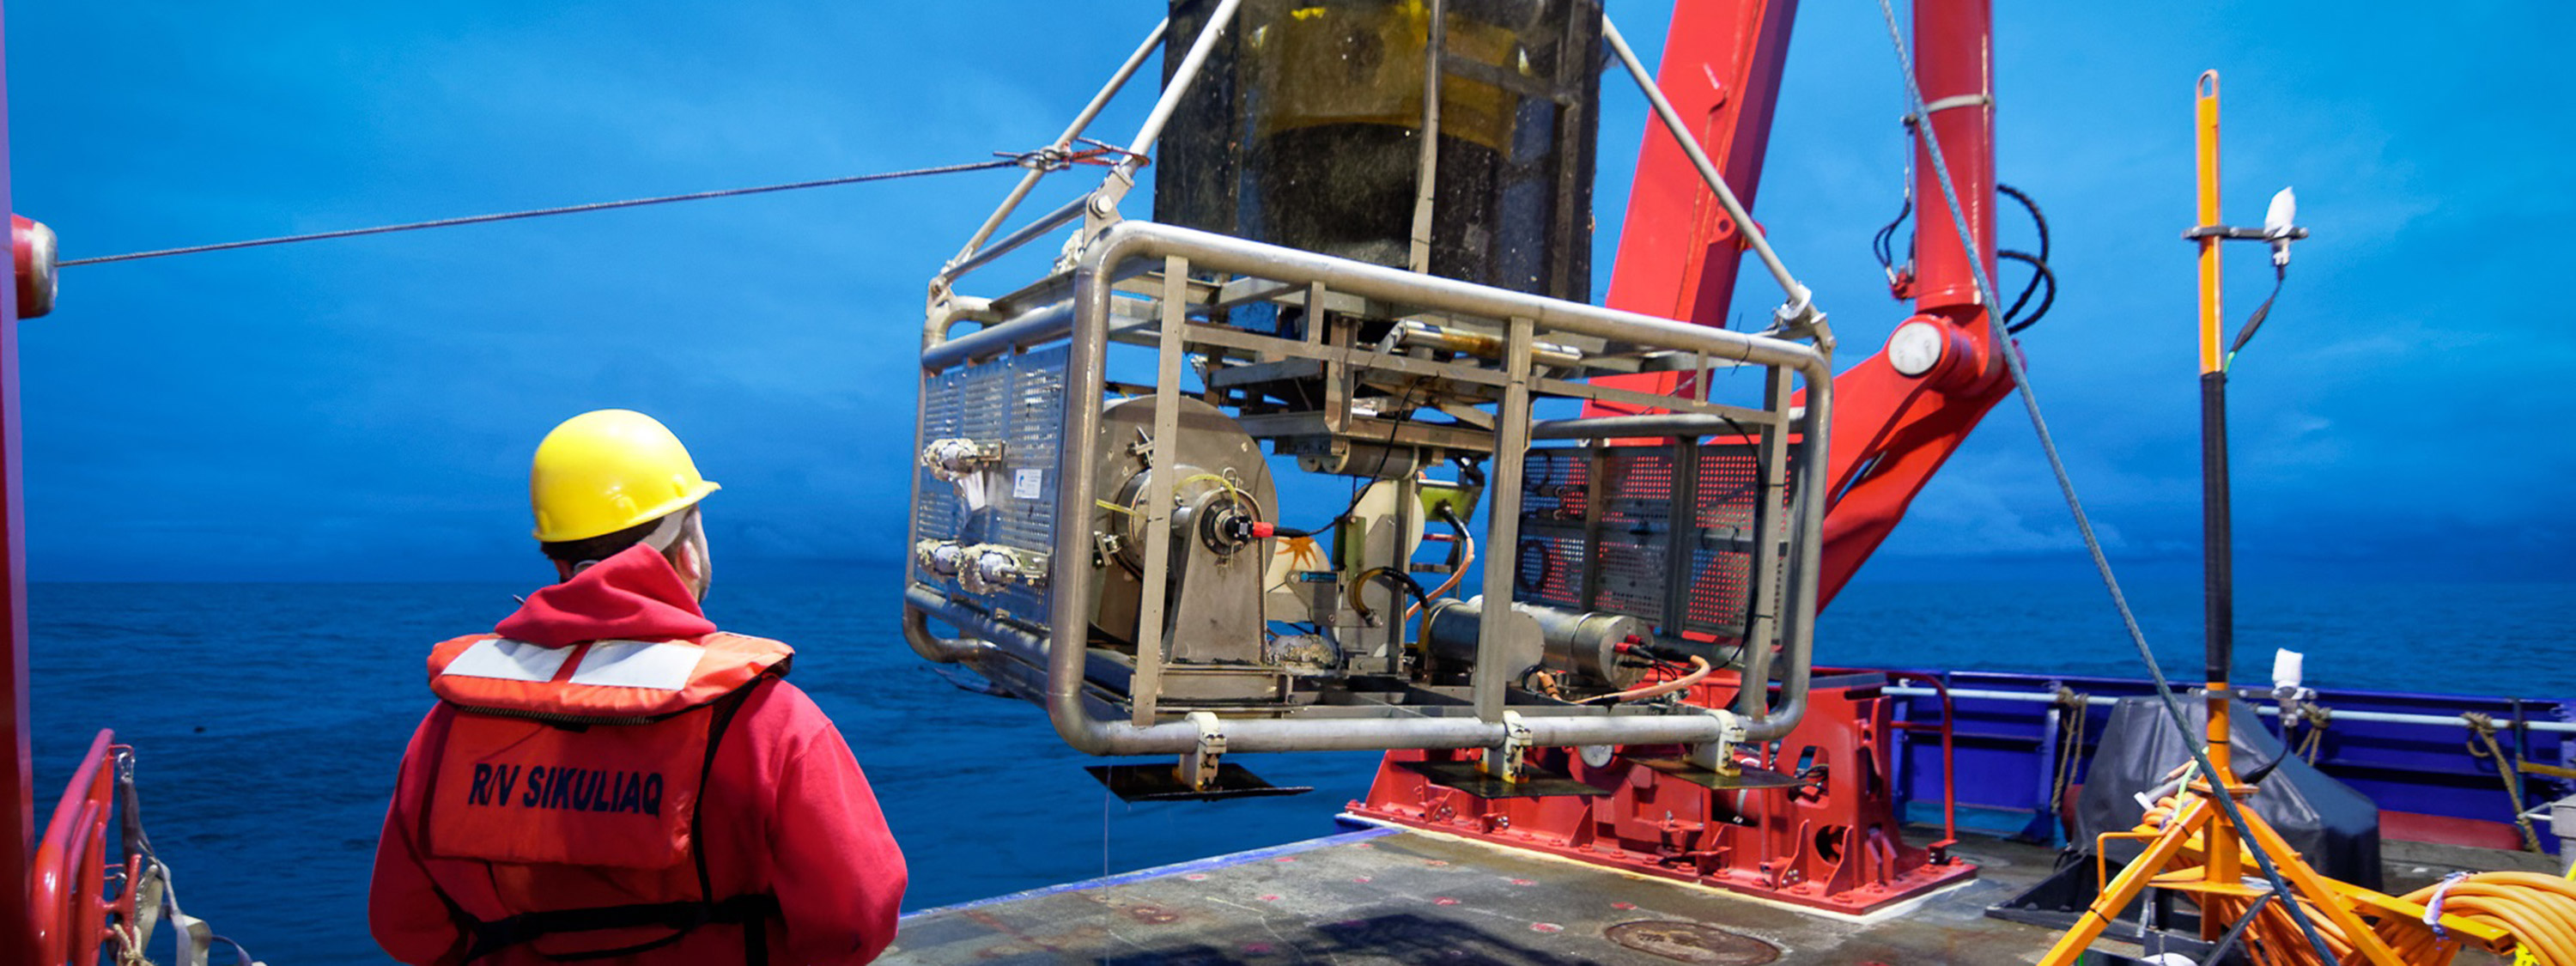 Worker and equipment, credit: Ocean Networks Canada